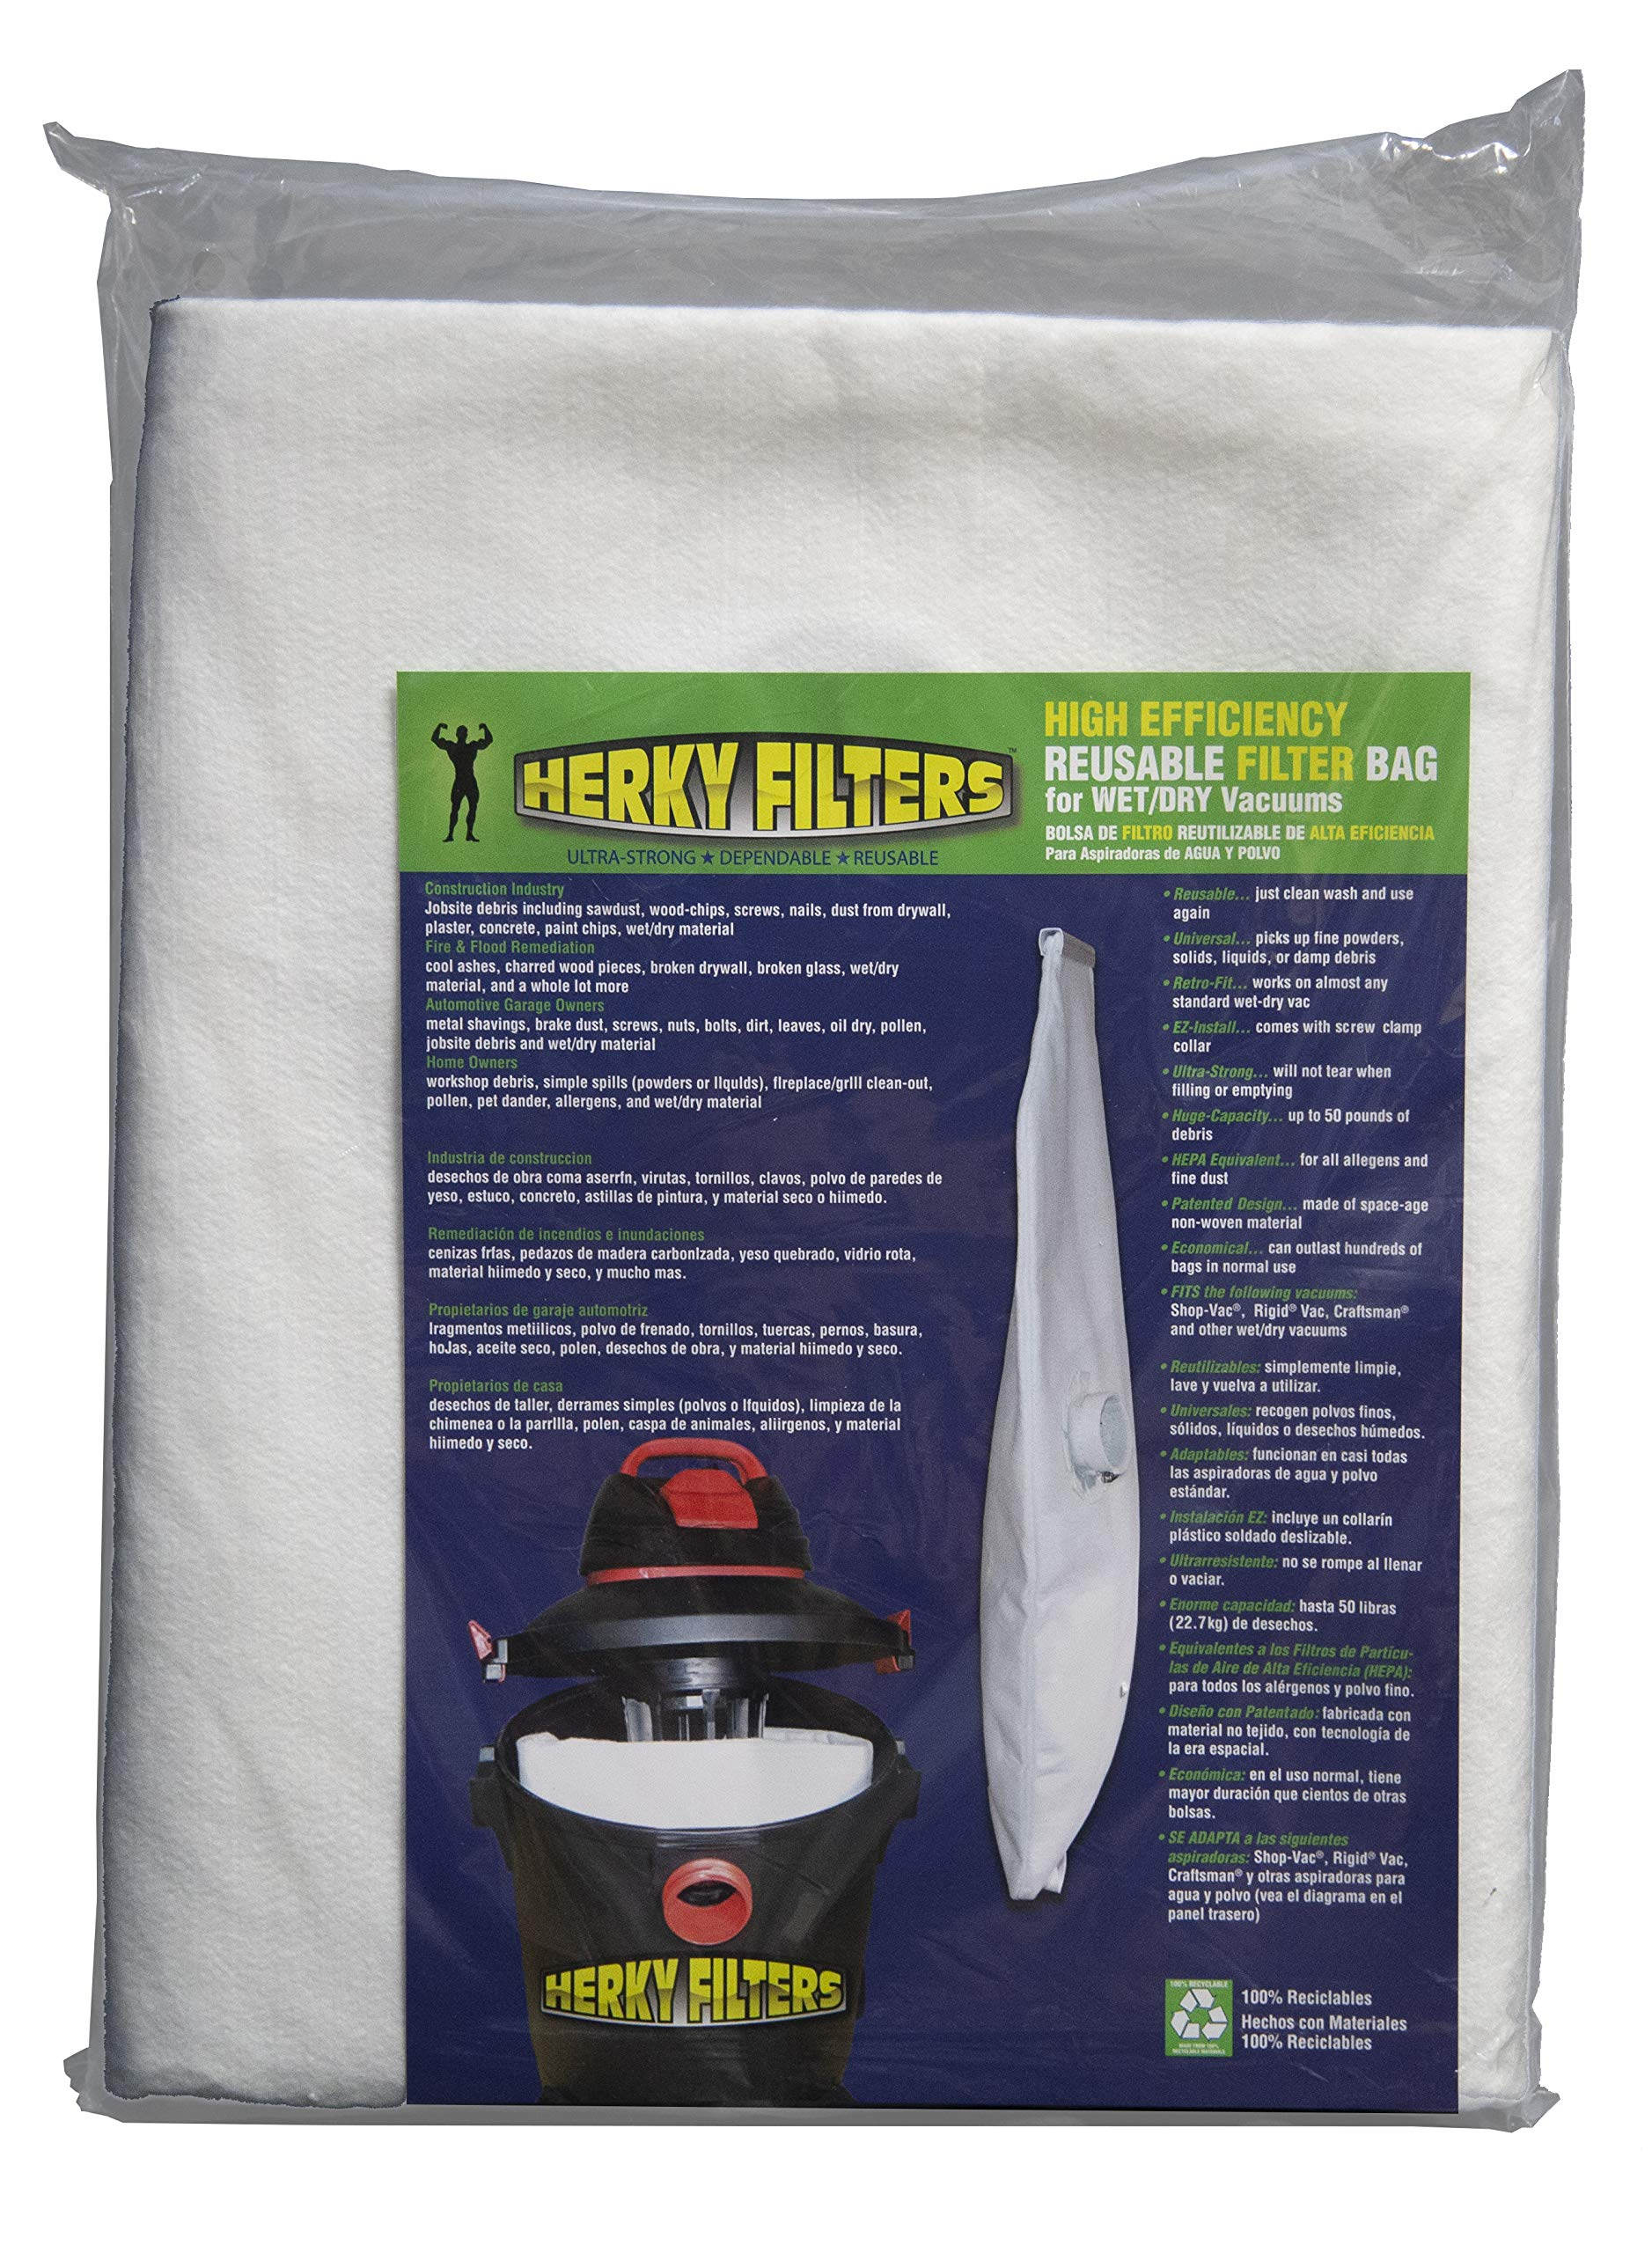 Medium Reusable Filter Bag for Wet/dry Vacuums by Herky Filters